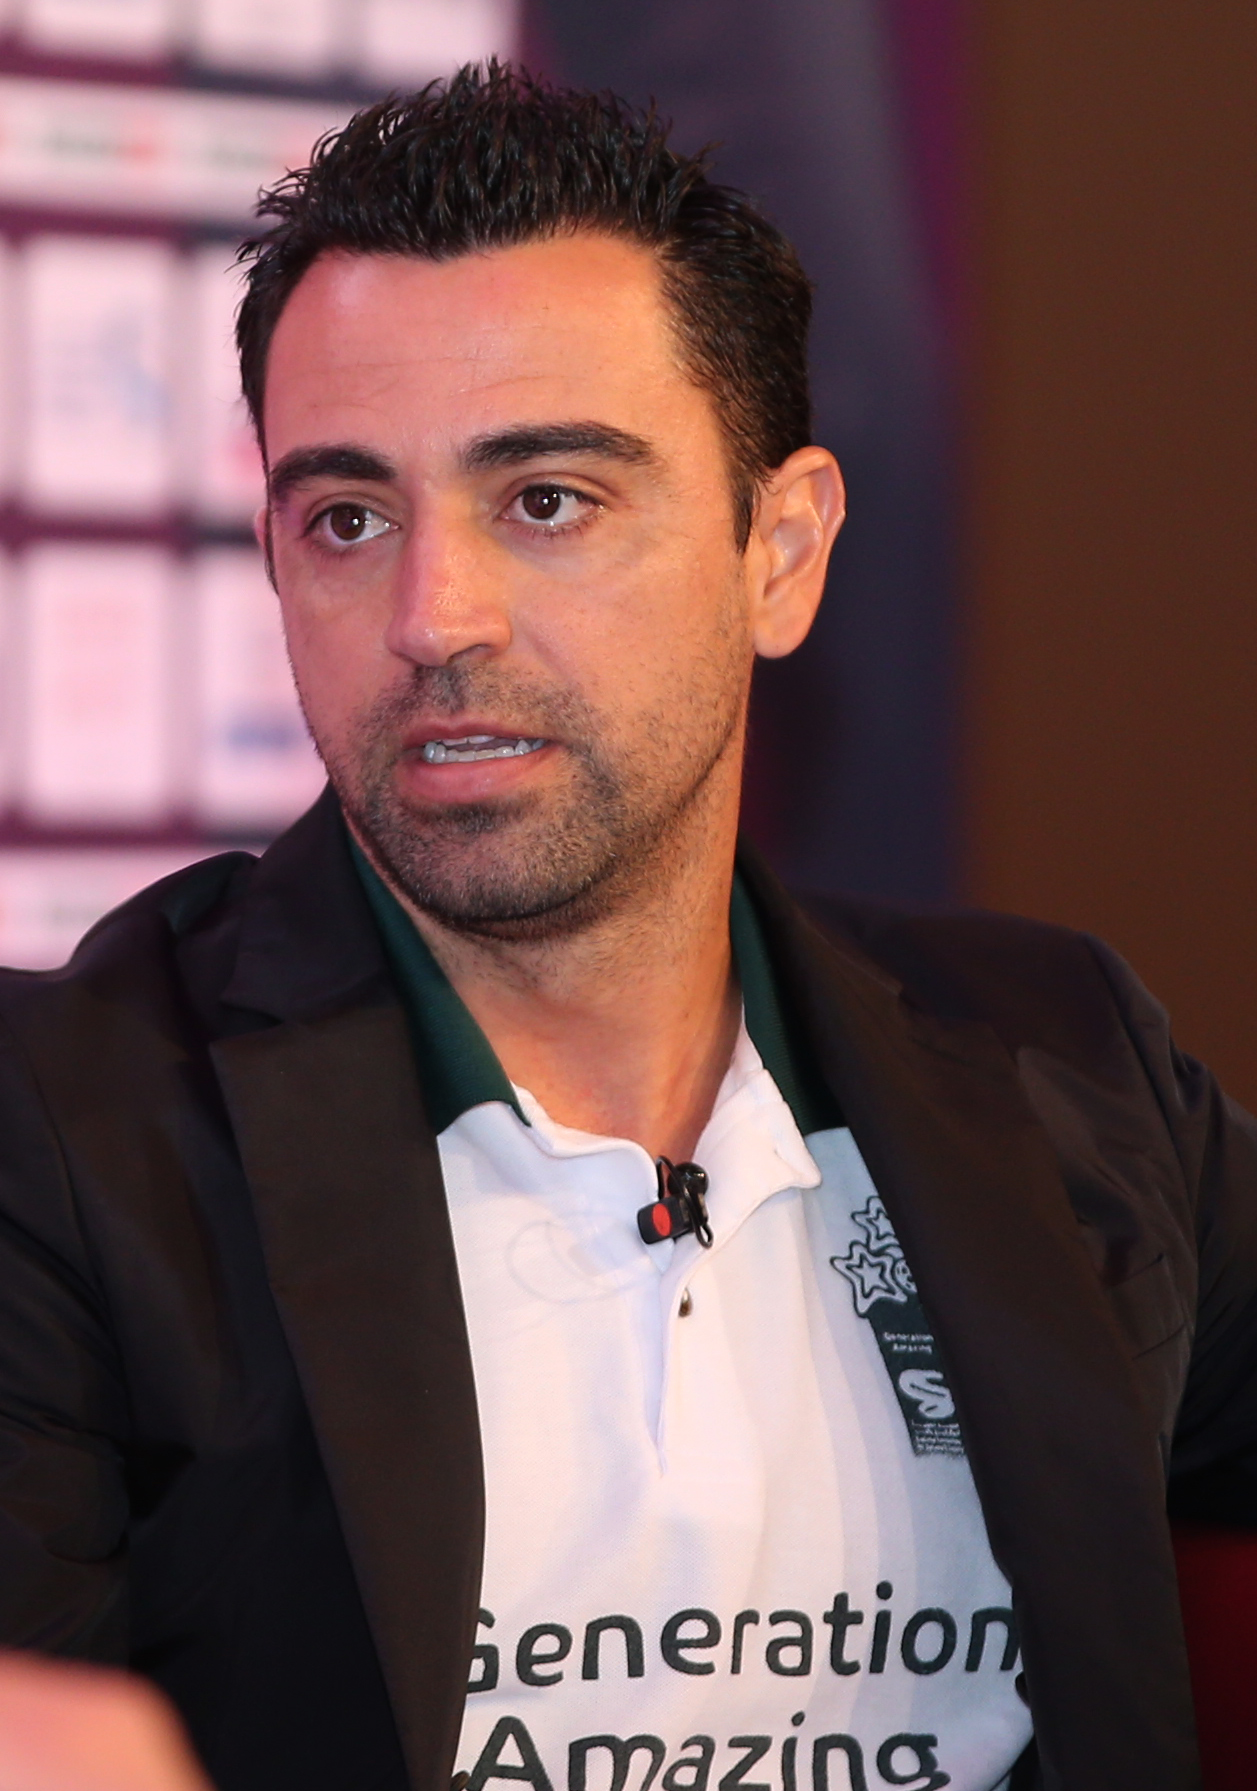 The 38-year old son of father Joaquim Hernández and mother Maria Mercè Creus Xavi Hernández in 2019 photo. Xavi Hernández earned a  million dollar salary - leaving the net worth at 40 million in 2019